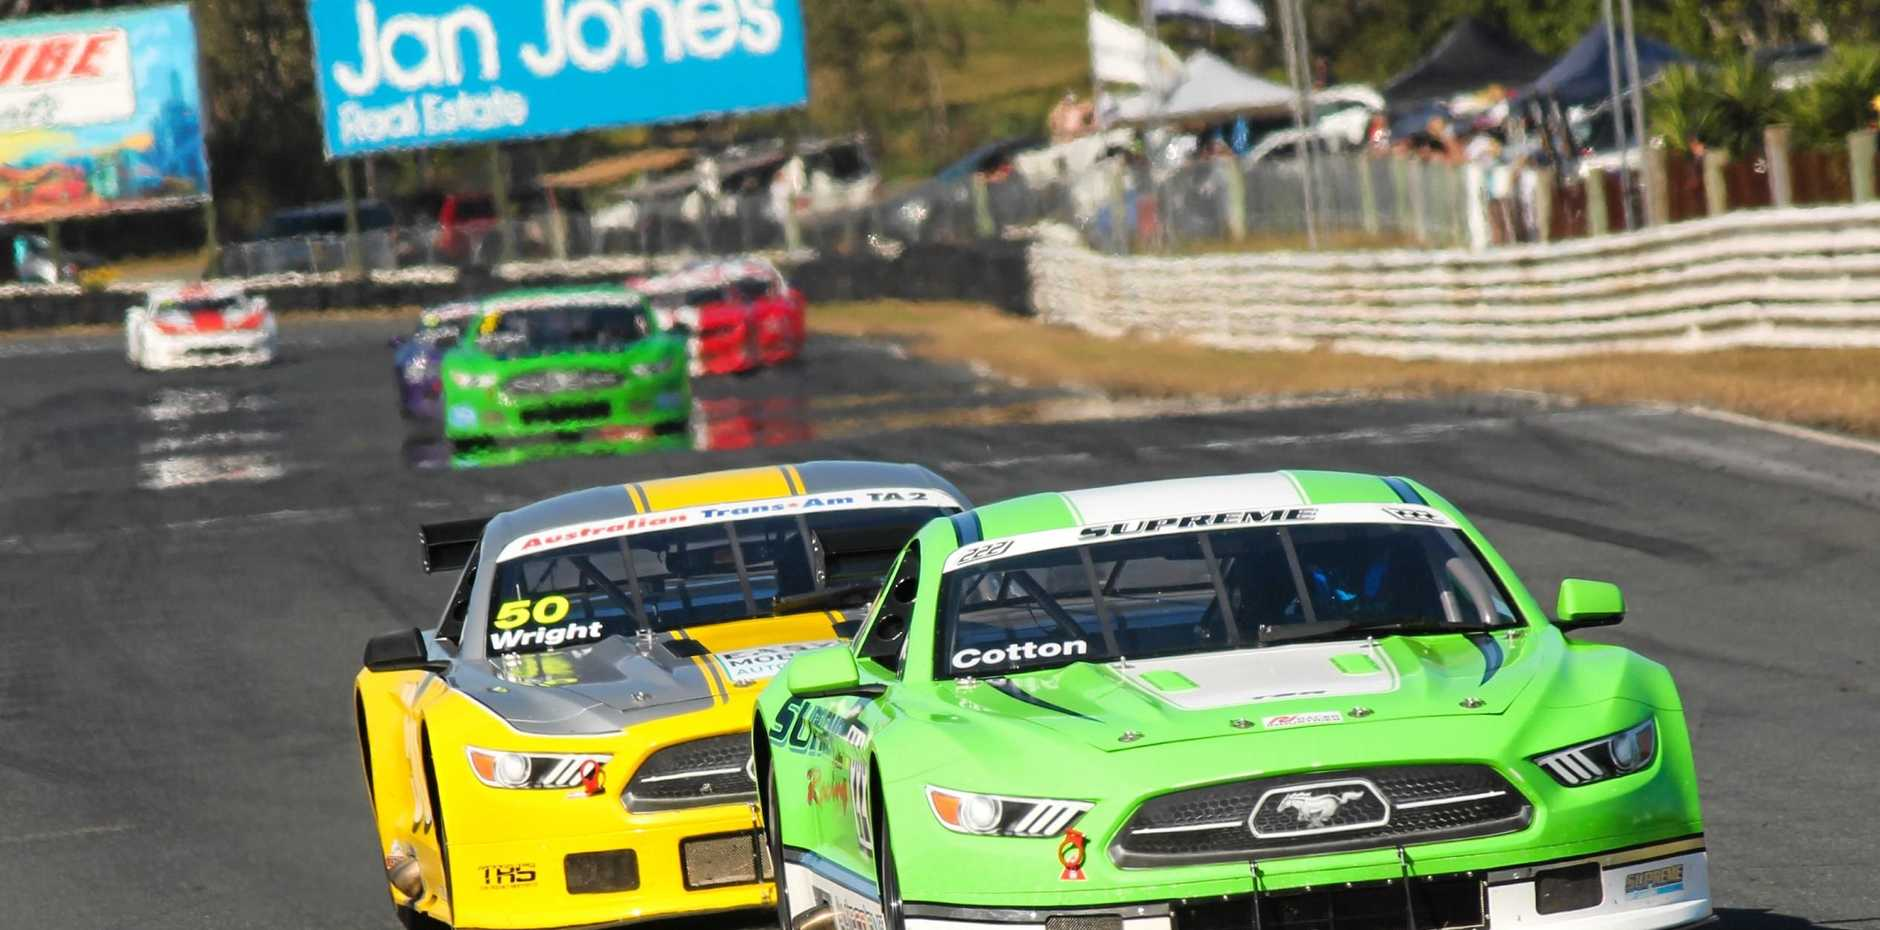 The Performax Cup is a six-round series starting at Winton in Victoria on March 10-11 for American muscle cars based on Ford Mustangs, Chev Camaros and Dodge Challengers.